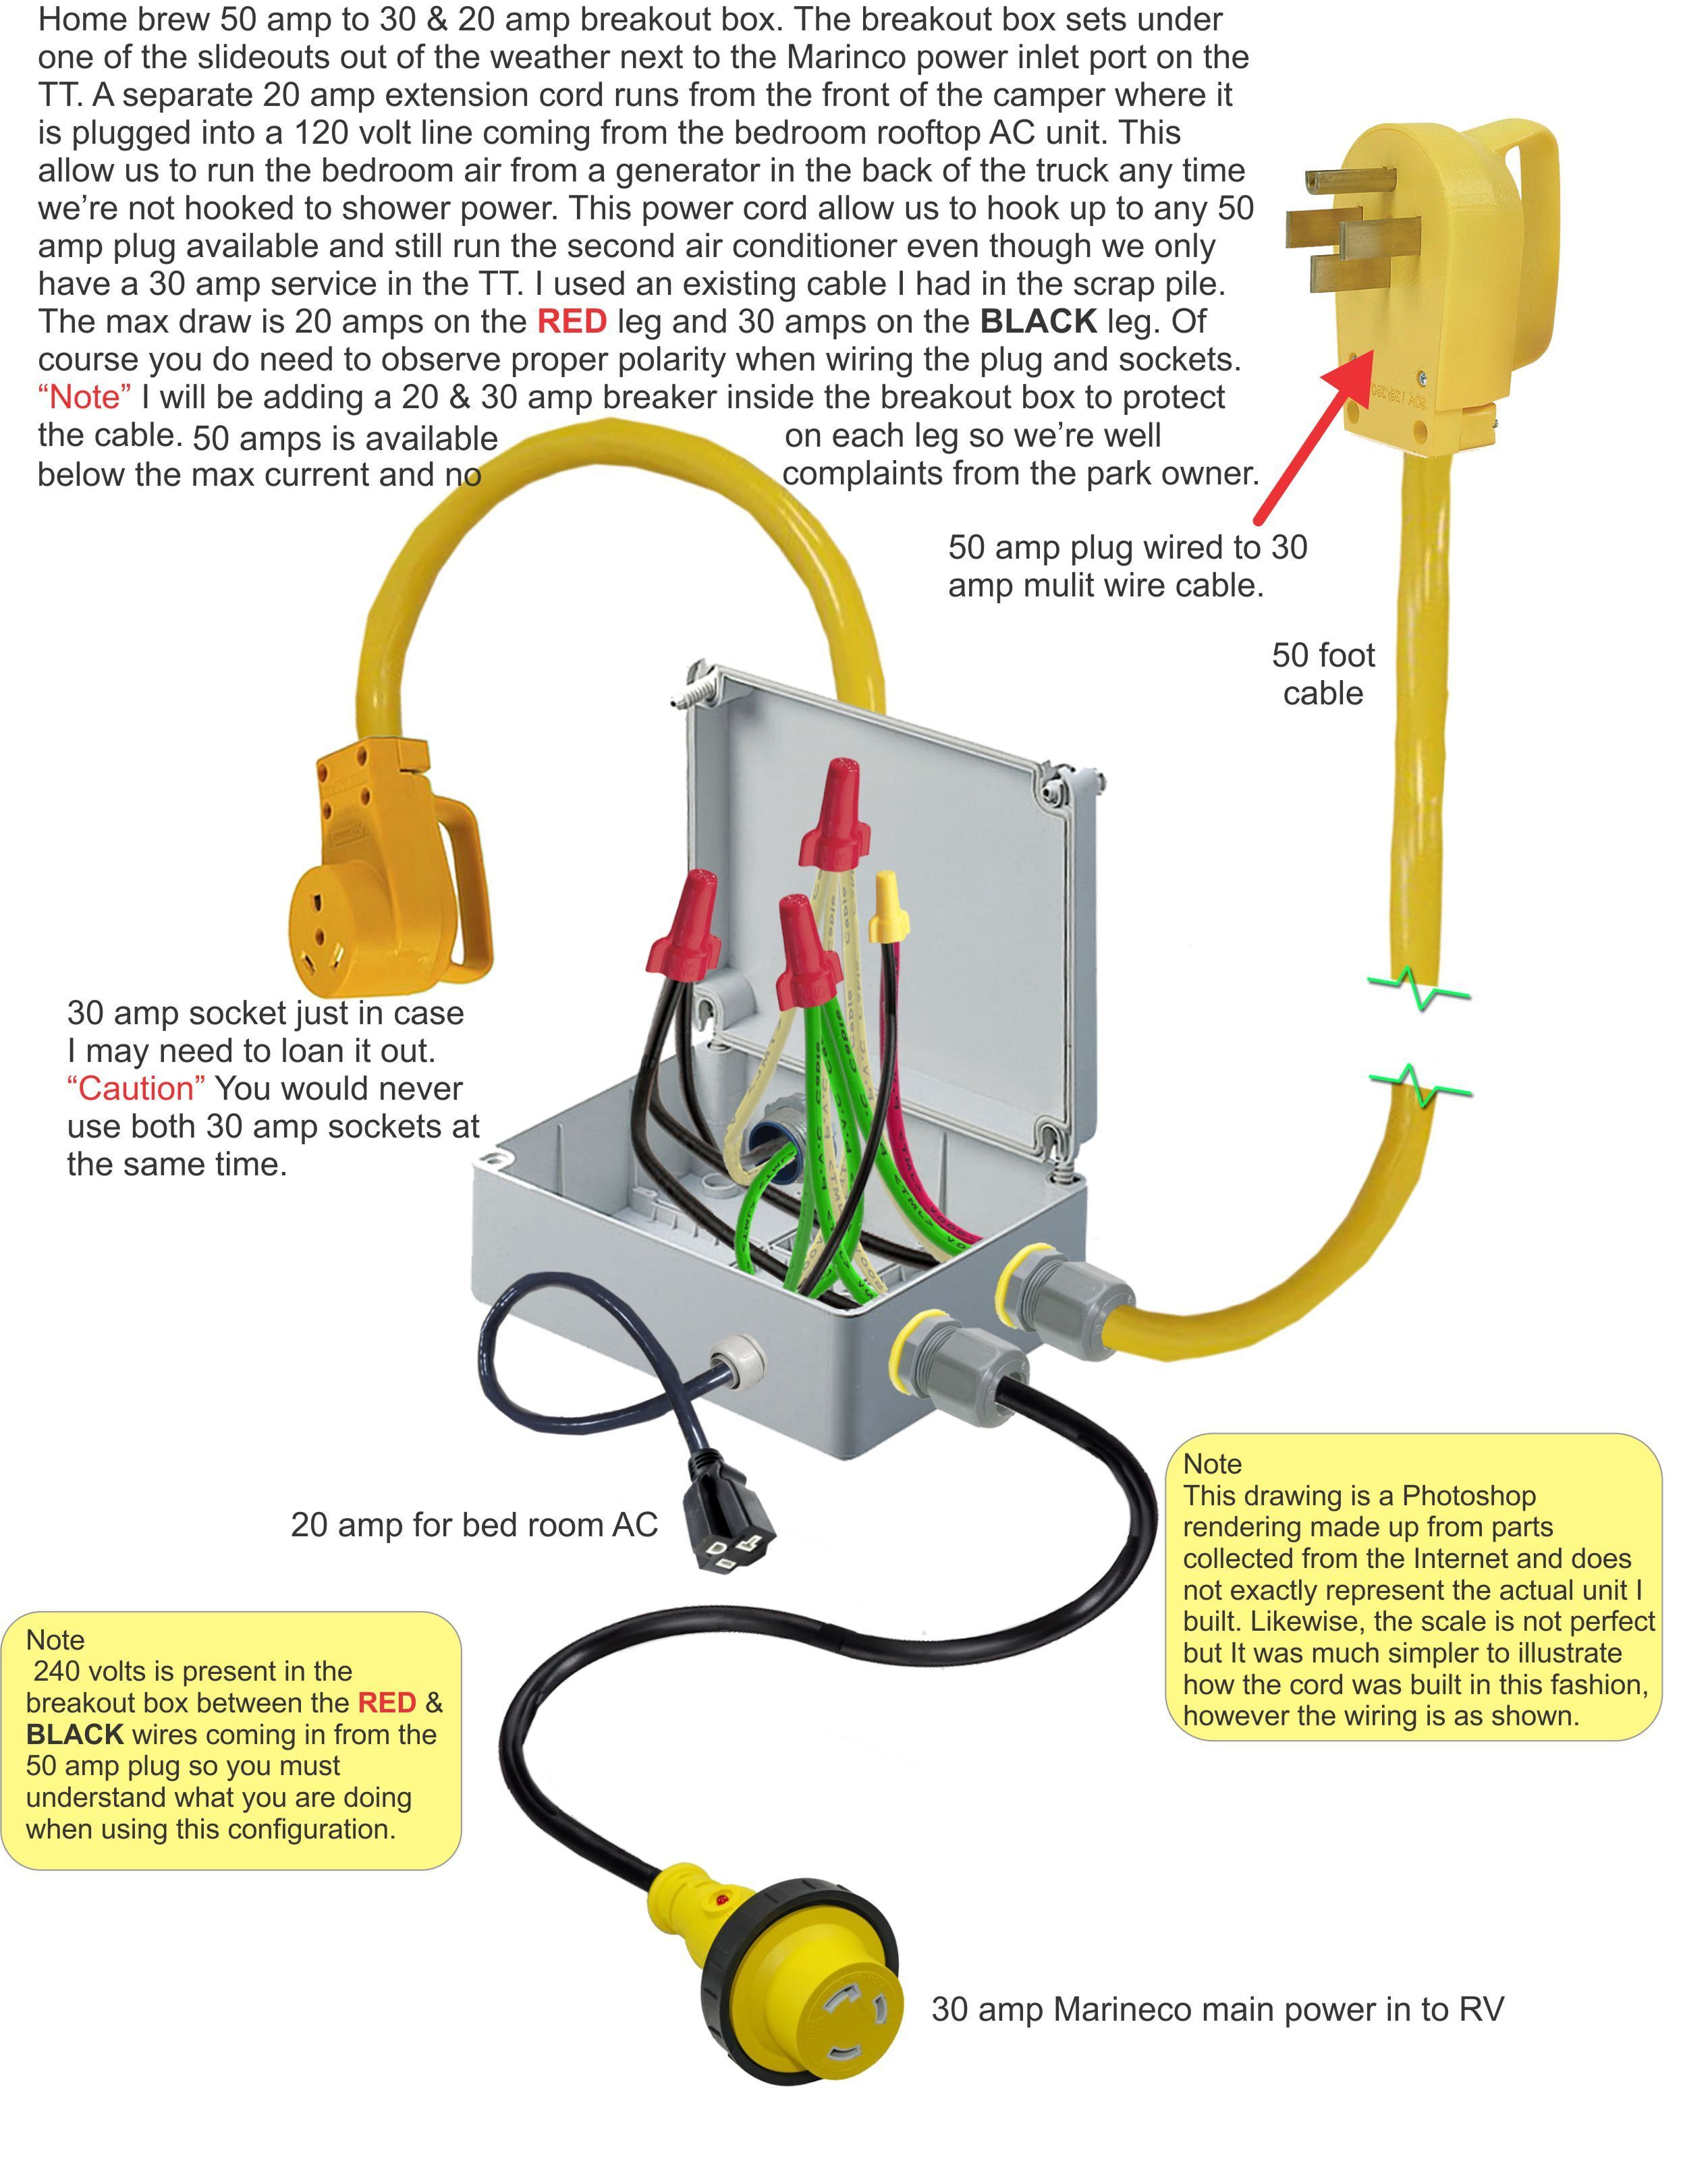 20 amp extension cord wiring diagram wire management u0026 wiring diagram50 amp rv plug wiring [ 2494 x 3237 Pixel ]